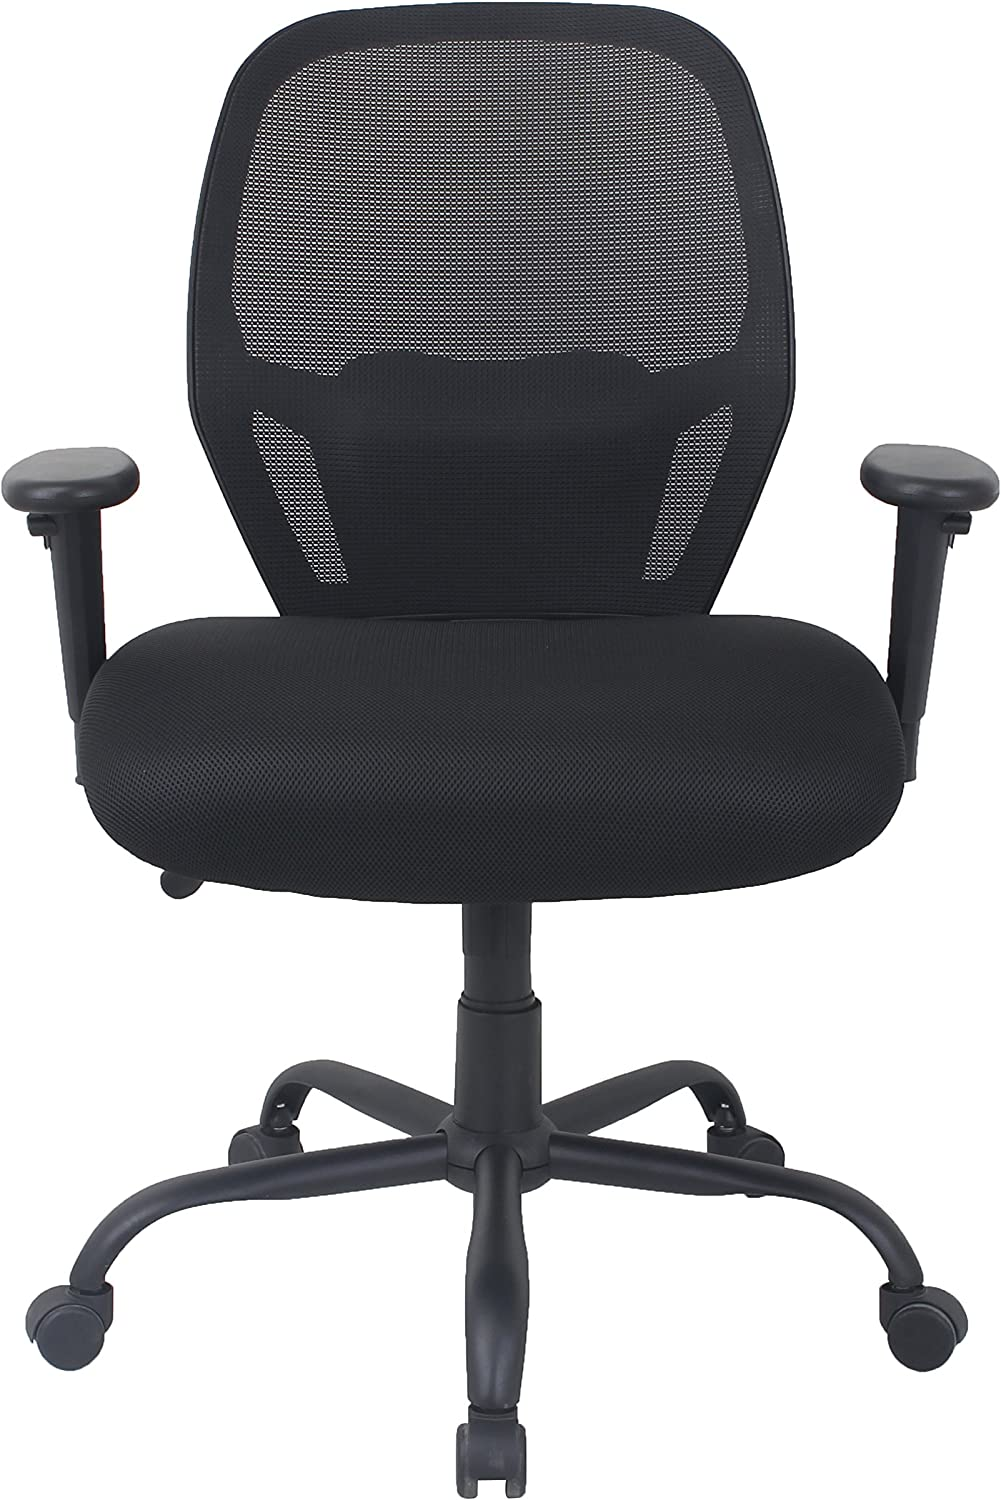 AmazonBasics Big Tall Swivel Office Chair – Mesh with Lumbar Support, 450-Pound Capacity – Black, BIFMA Certified